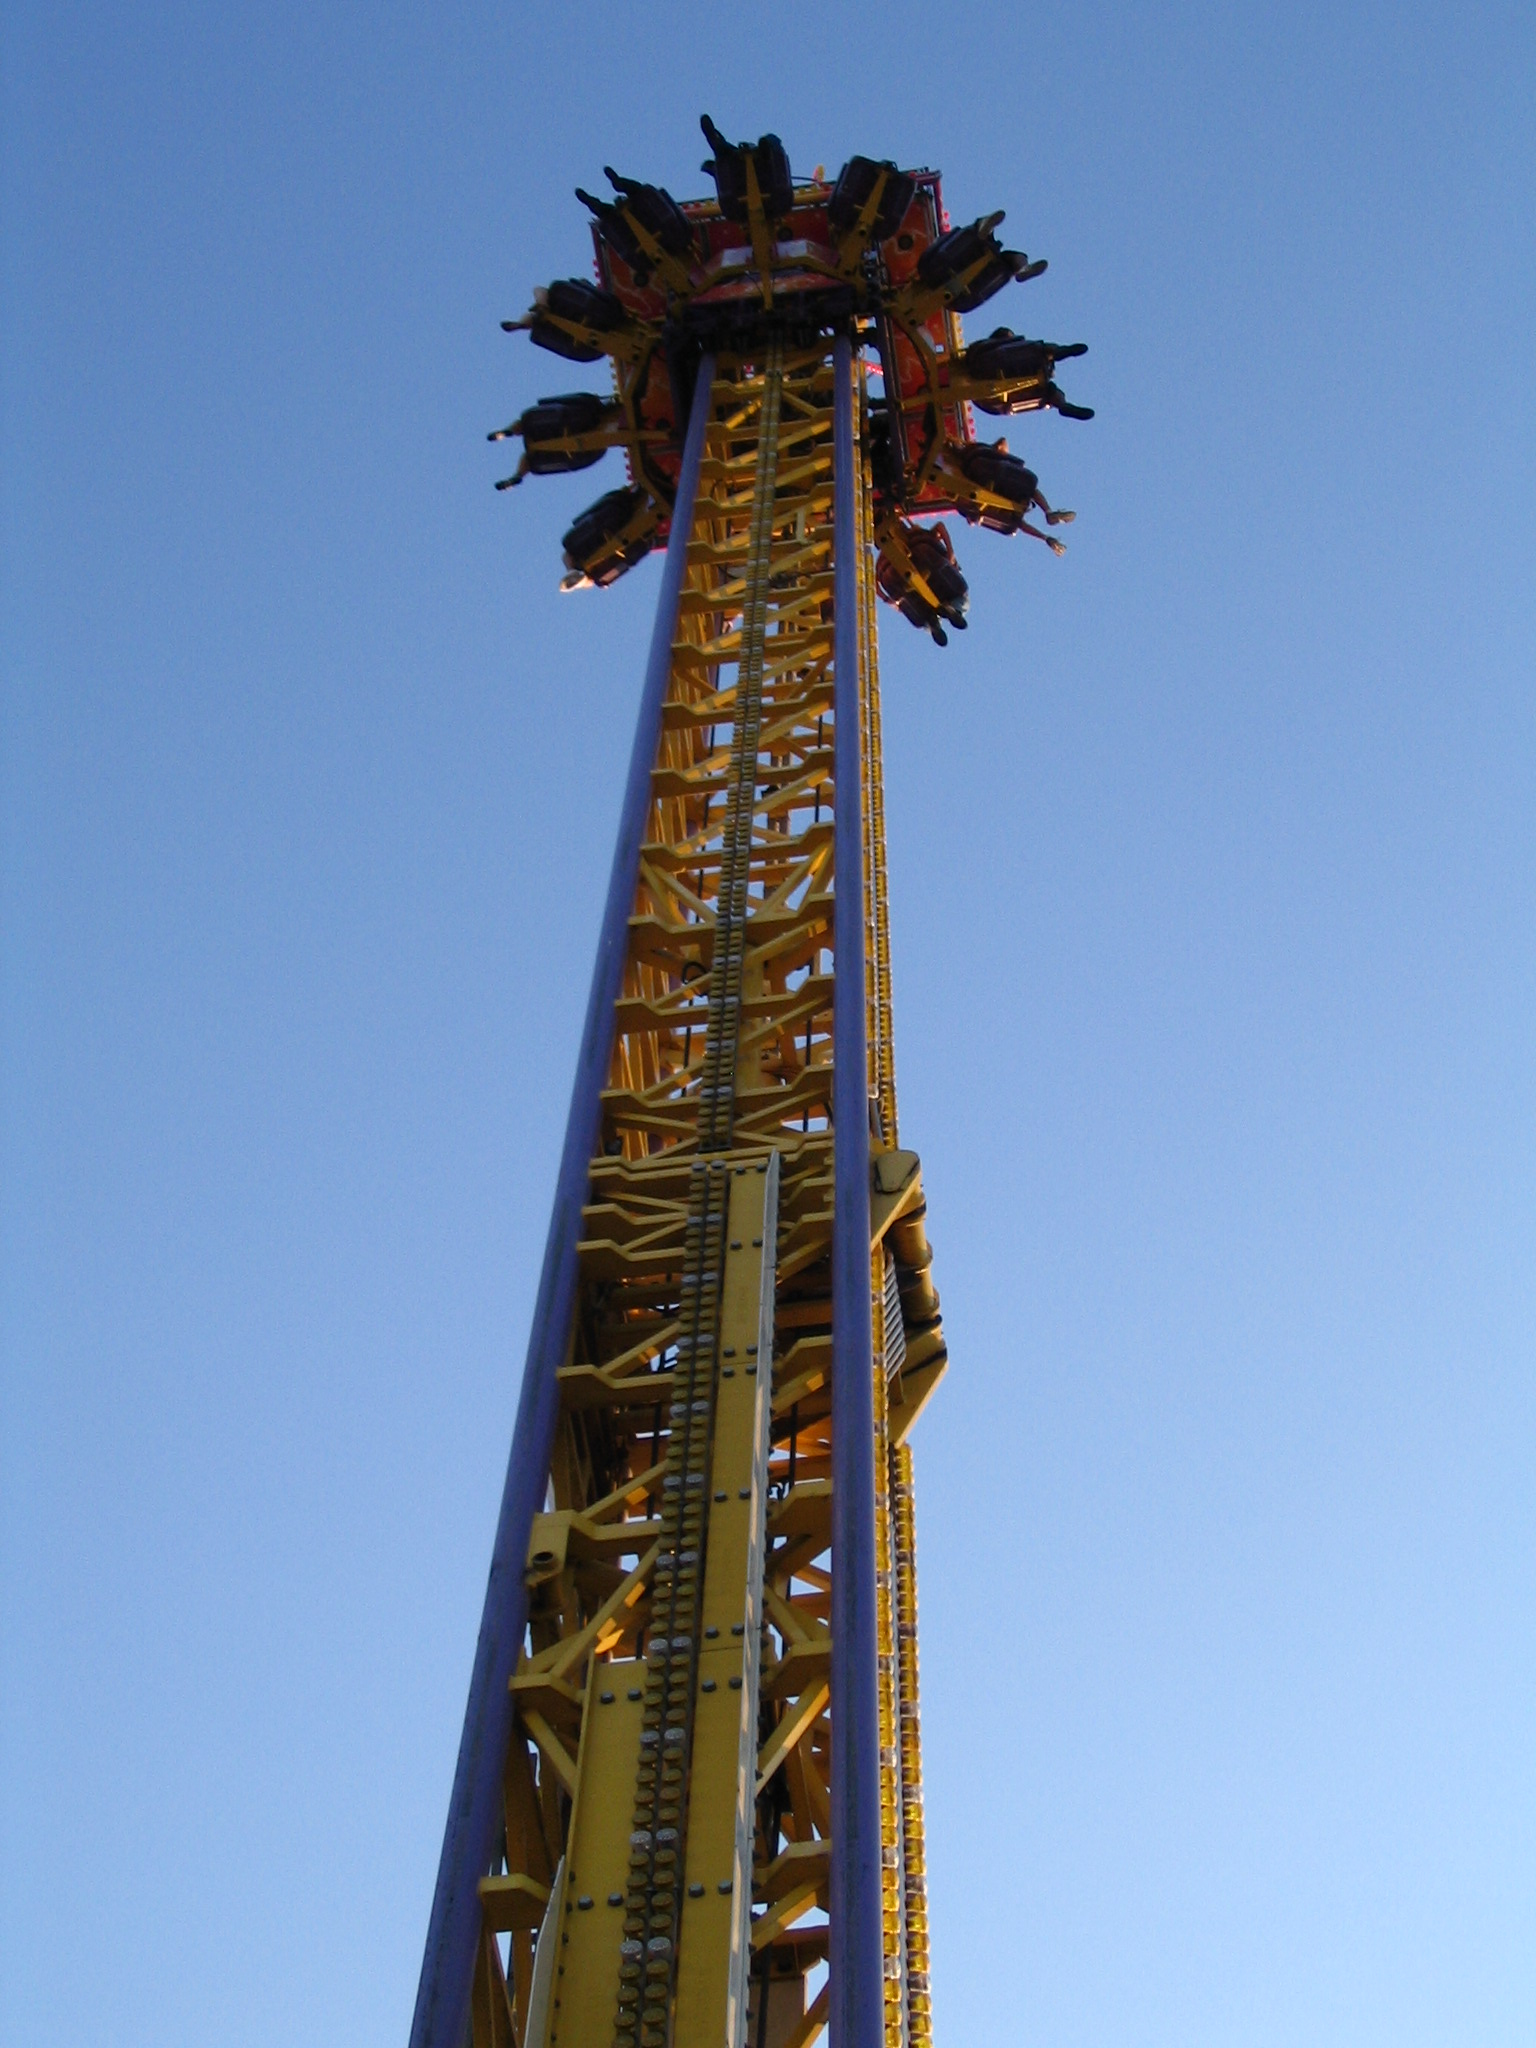 File:Drop tower at the CNE, September 2009.jpg